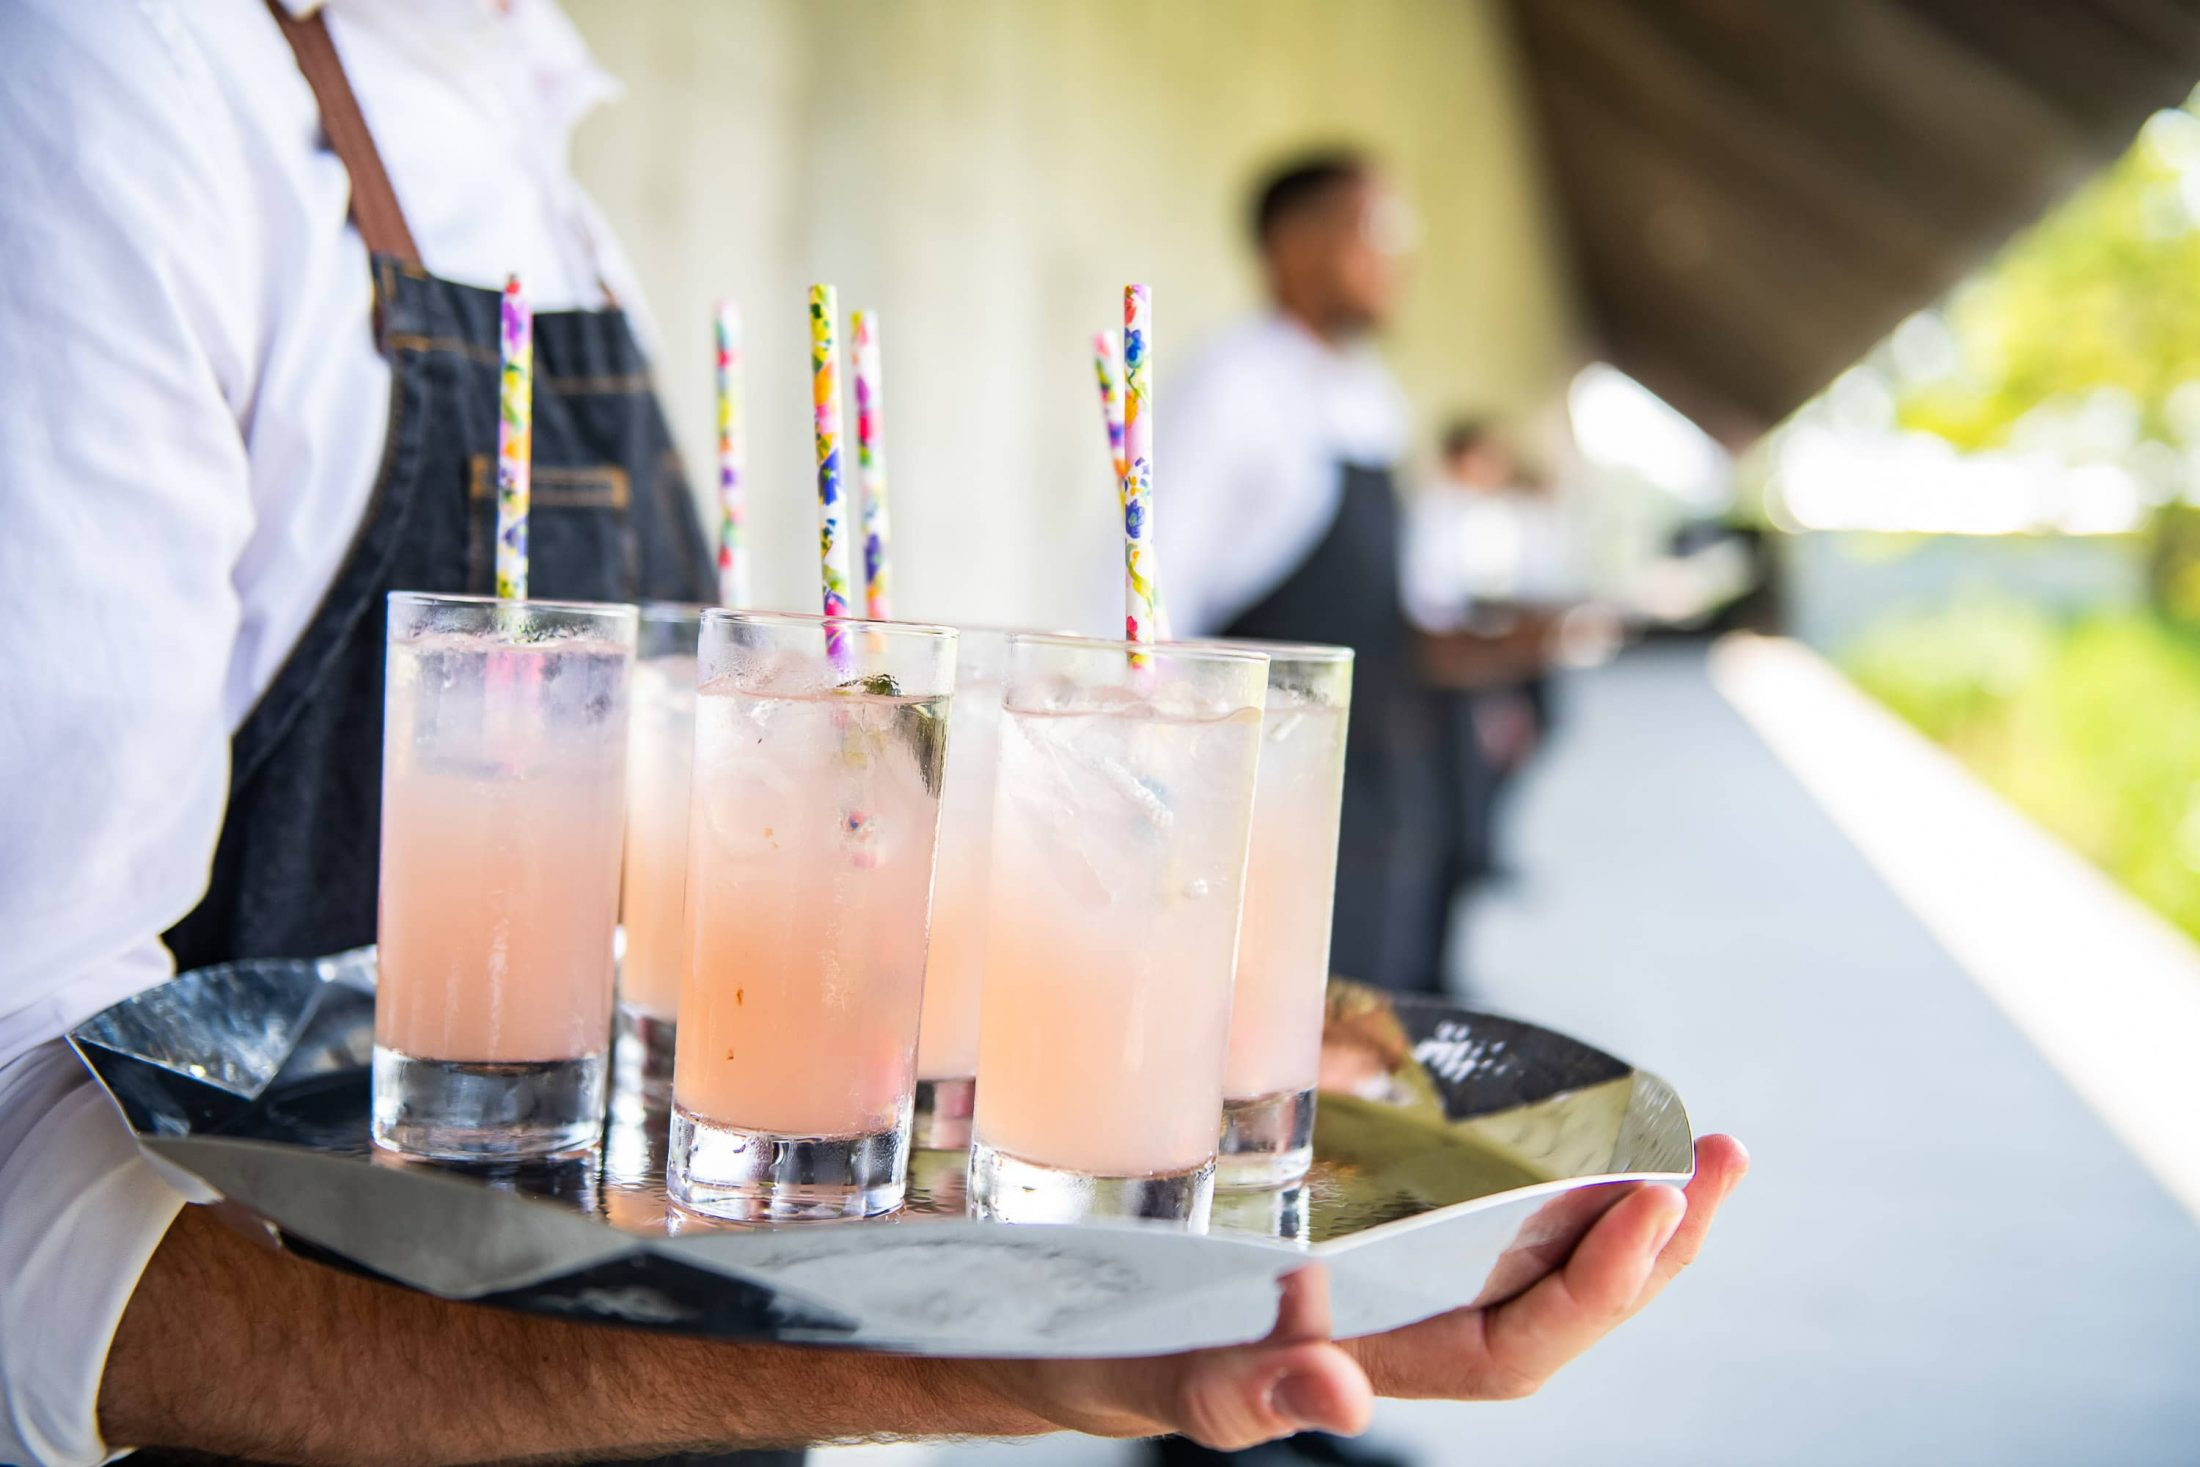 Cocktails at this Hamptons wedding weekend held at The Parrish Museum | Photo by Roey Yohai Studio